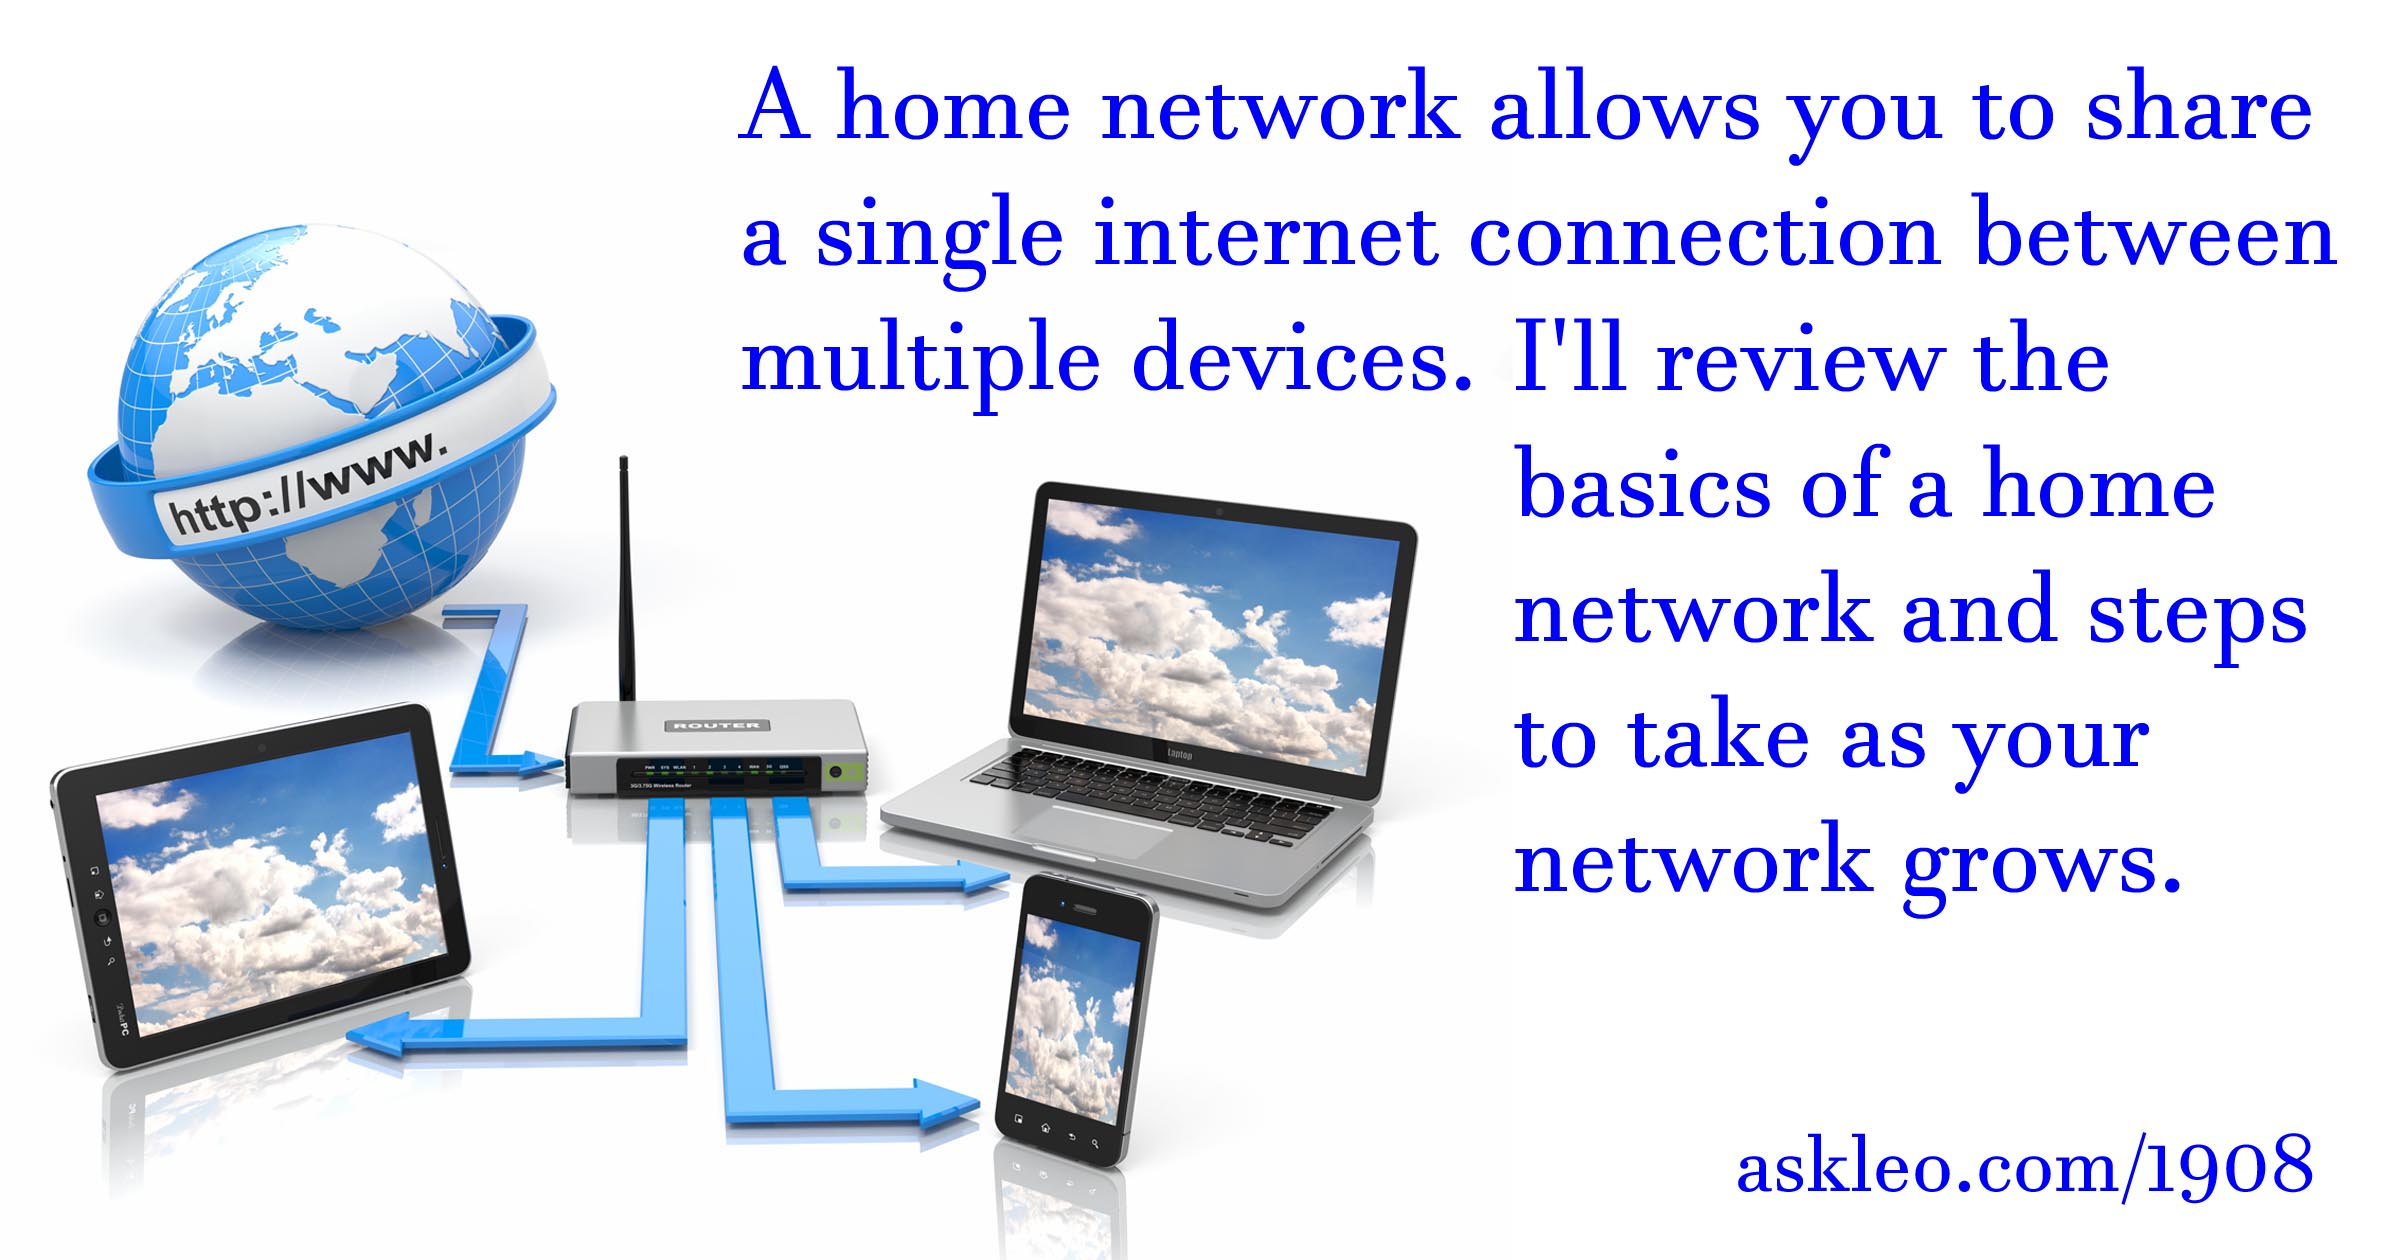 How Should I Set Up My Home Network? - Ask Leo! on